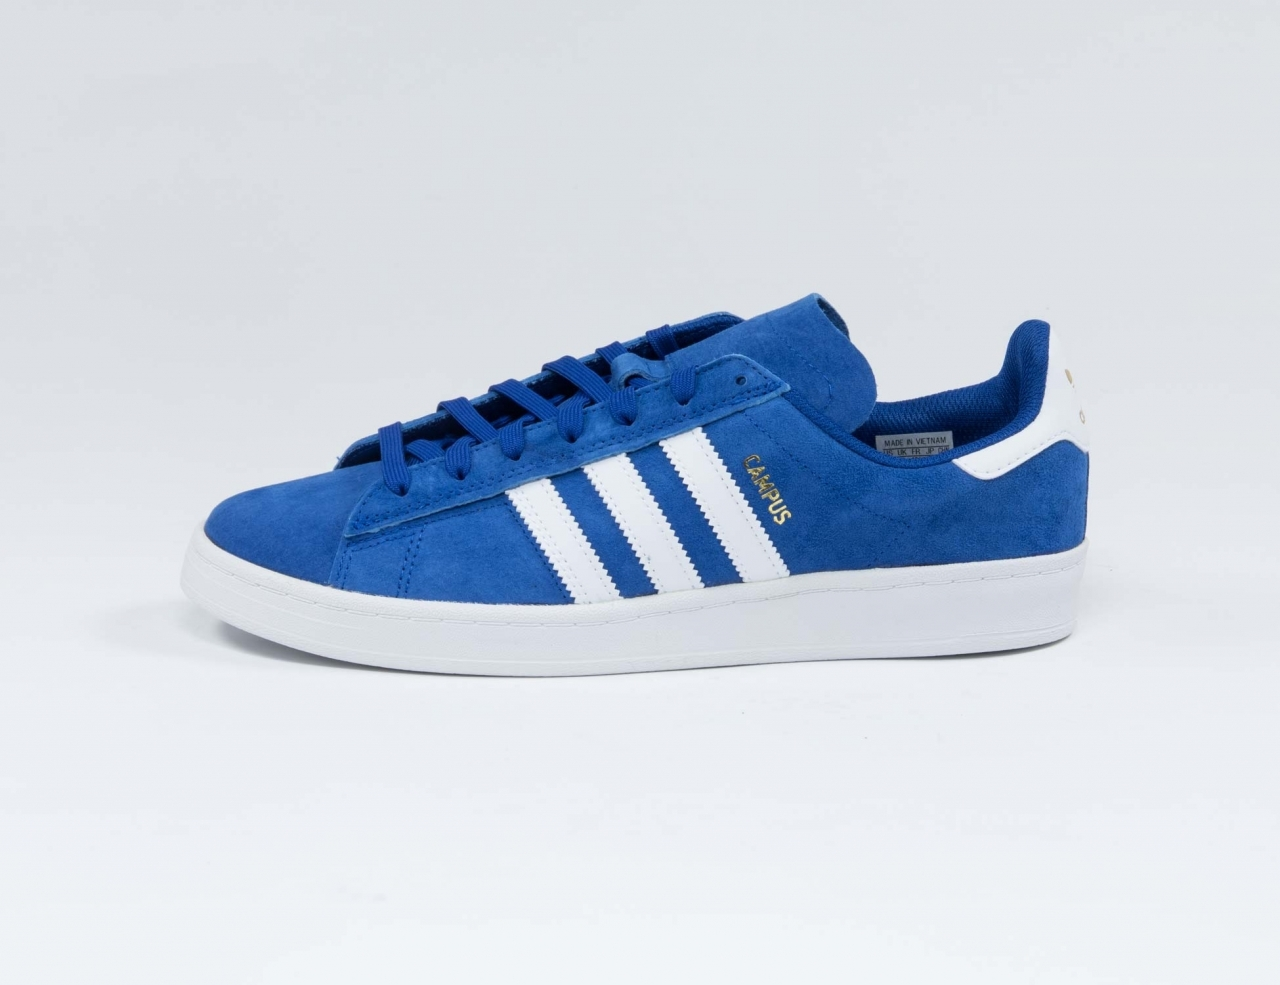 Adidas Campus ADV Sneaker - Royal Blue / White / Gold Metallic